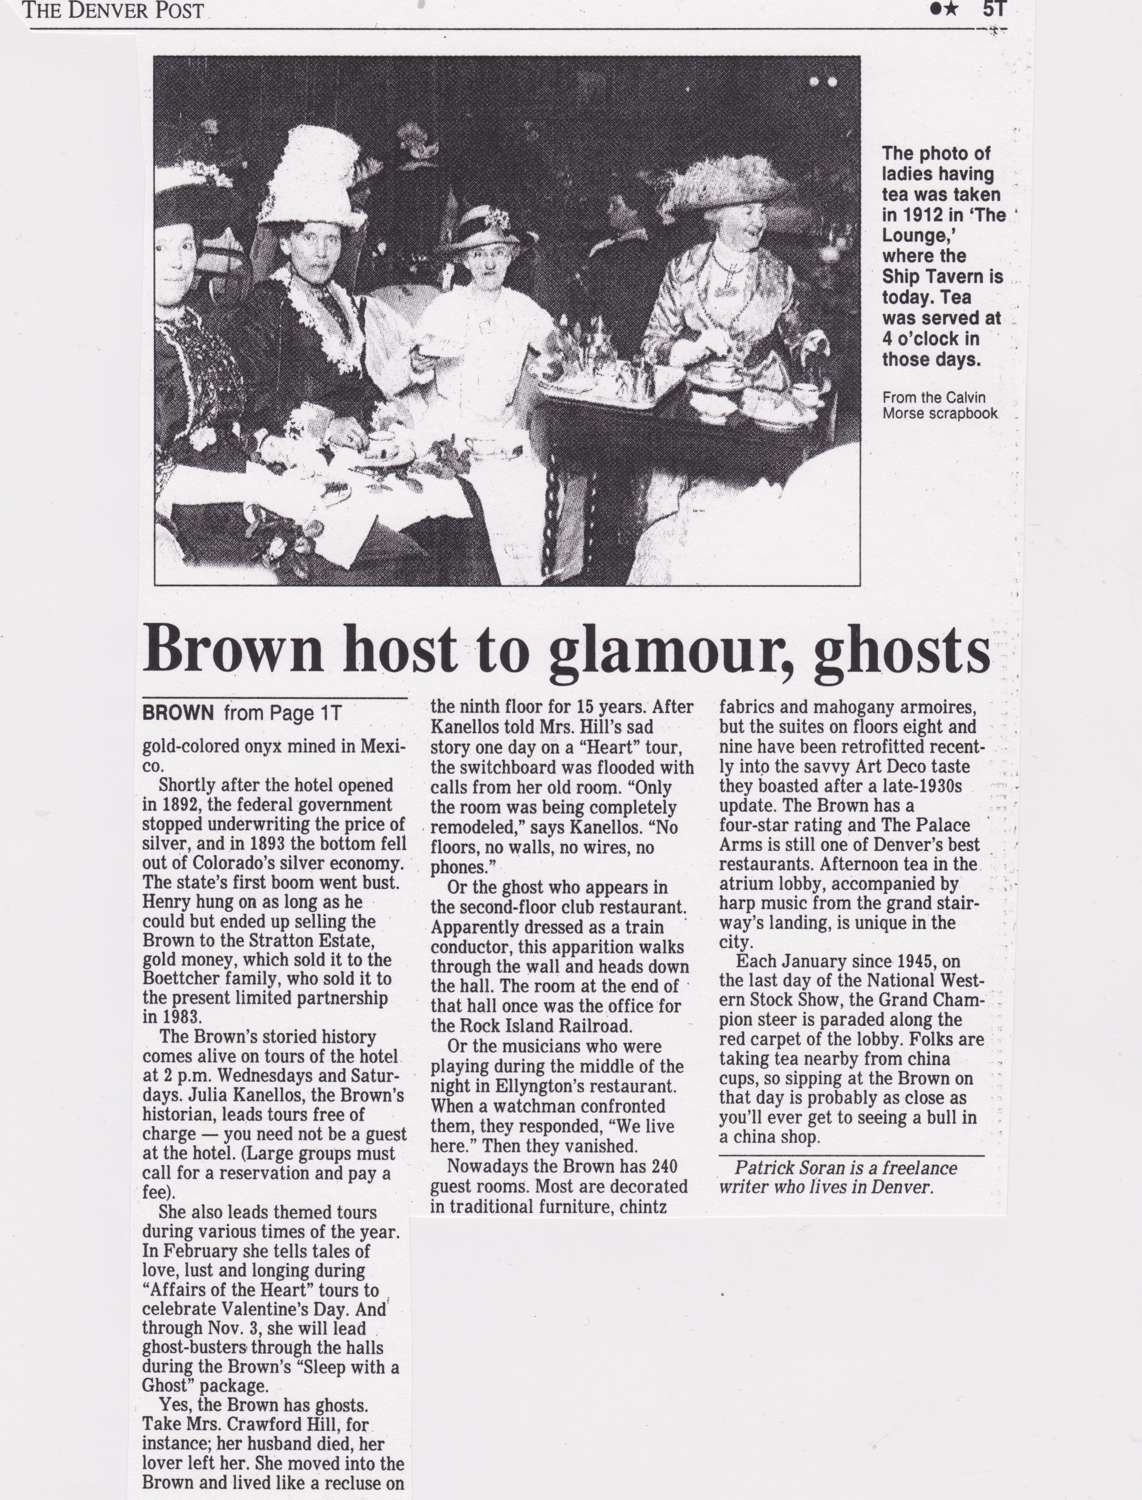 Brown host to glamour; ghosts